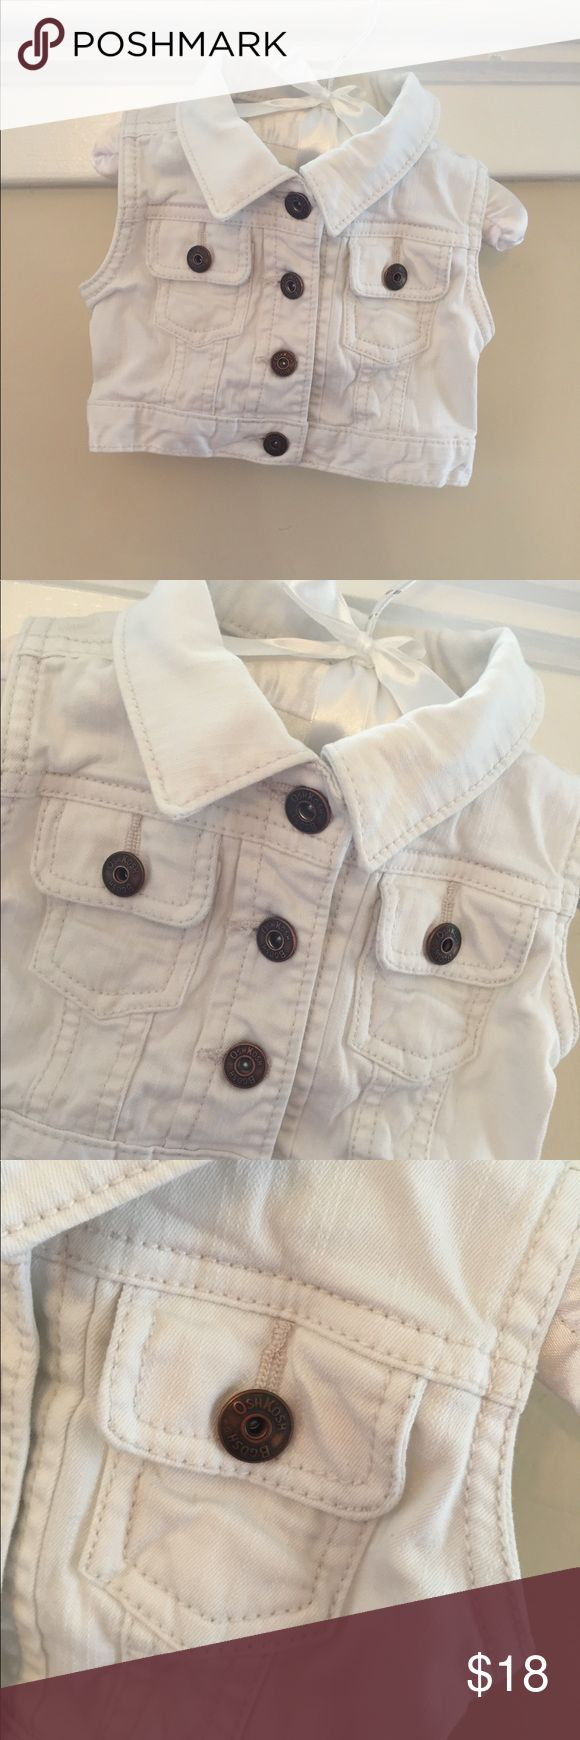 OshKosh White Denim Vest Size 12 Months OshKosh White Denim Vest Size 12 Months. Fun twist on a jean jacket! This is a perfect extra layer for spring as it goes with everything. Has four buttons in the front, and buttons in the back along the waist that can be used to adjust the size. In excellent condition! OshKosh B'gosh Jackets & Coats Vests